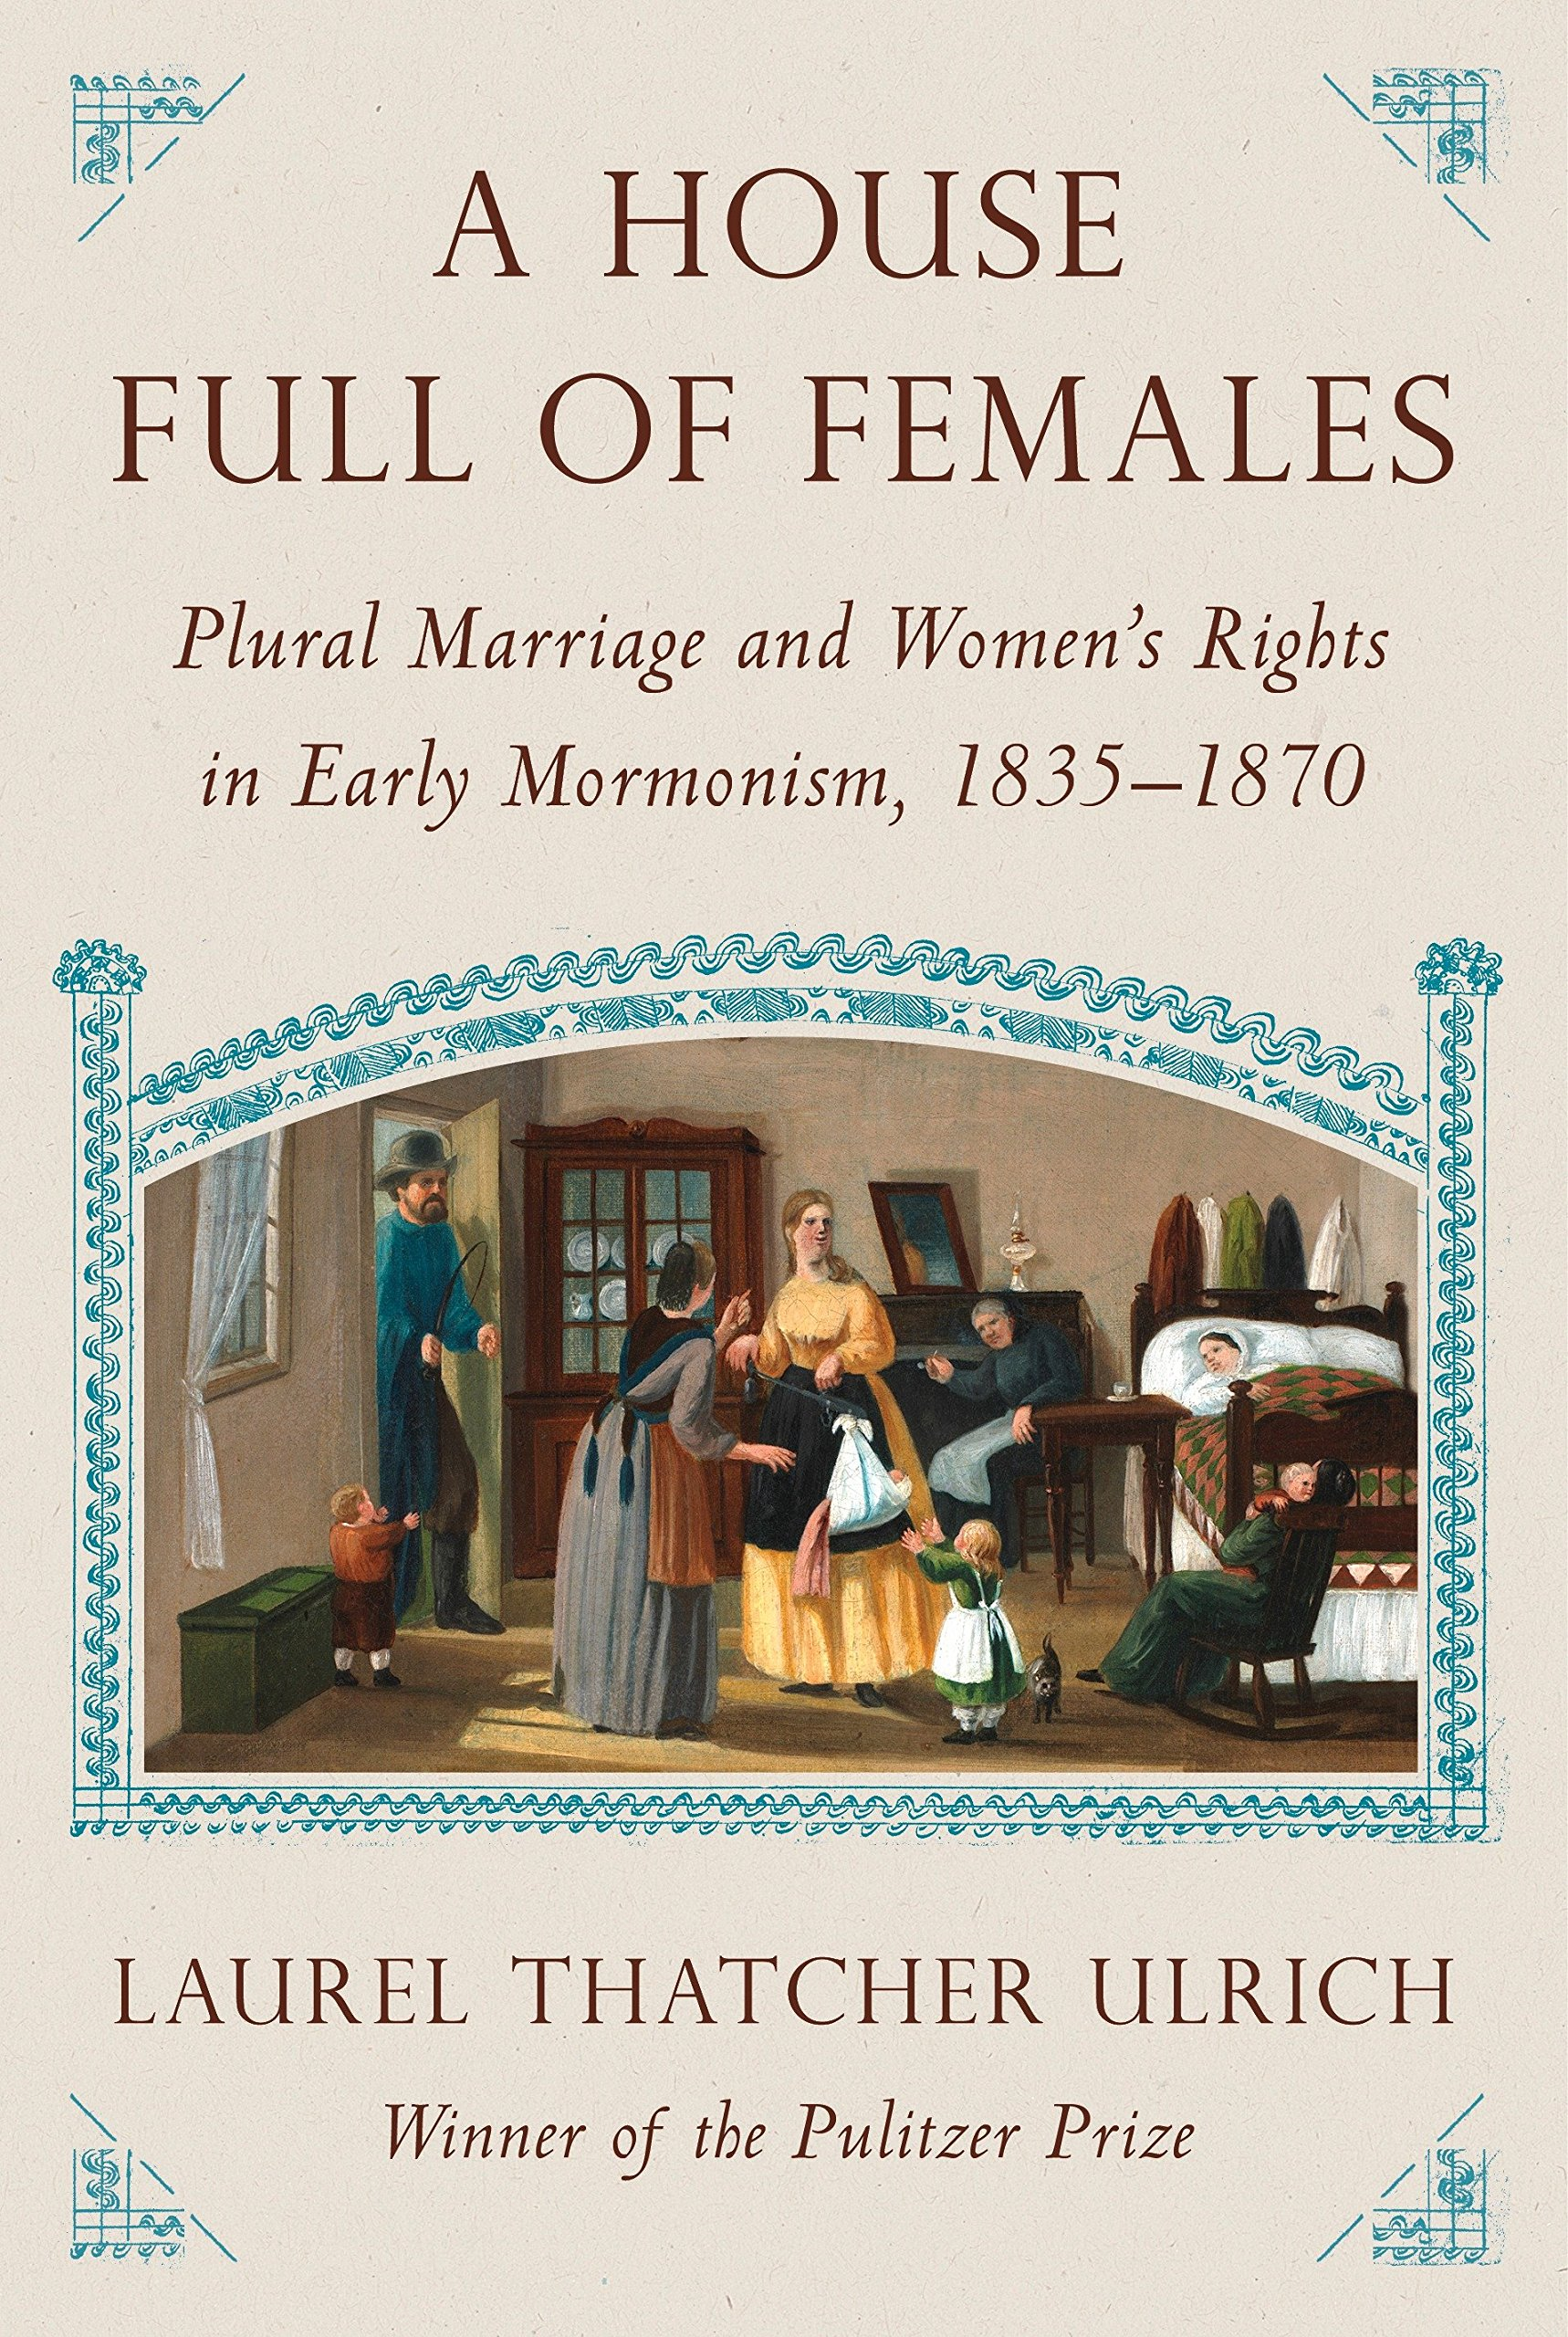 A House Full of Females: Plural Marriage and Women's Rights in Early